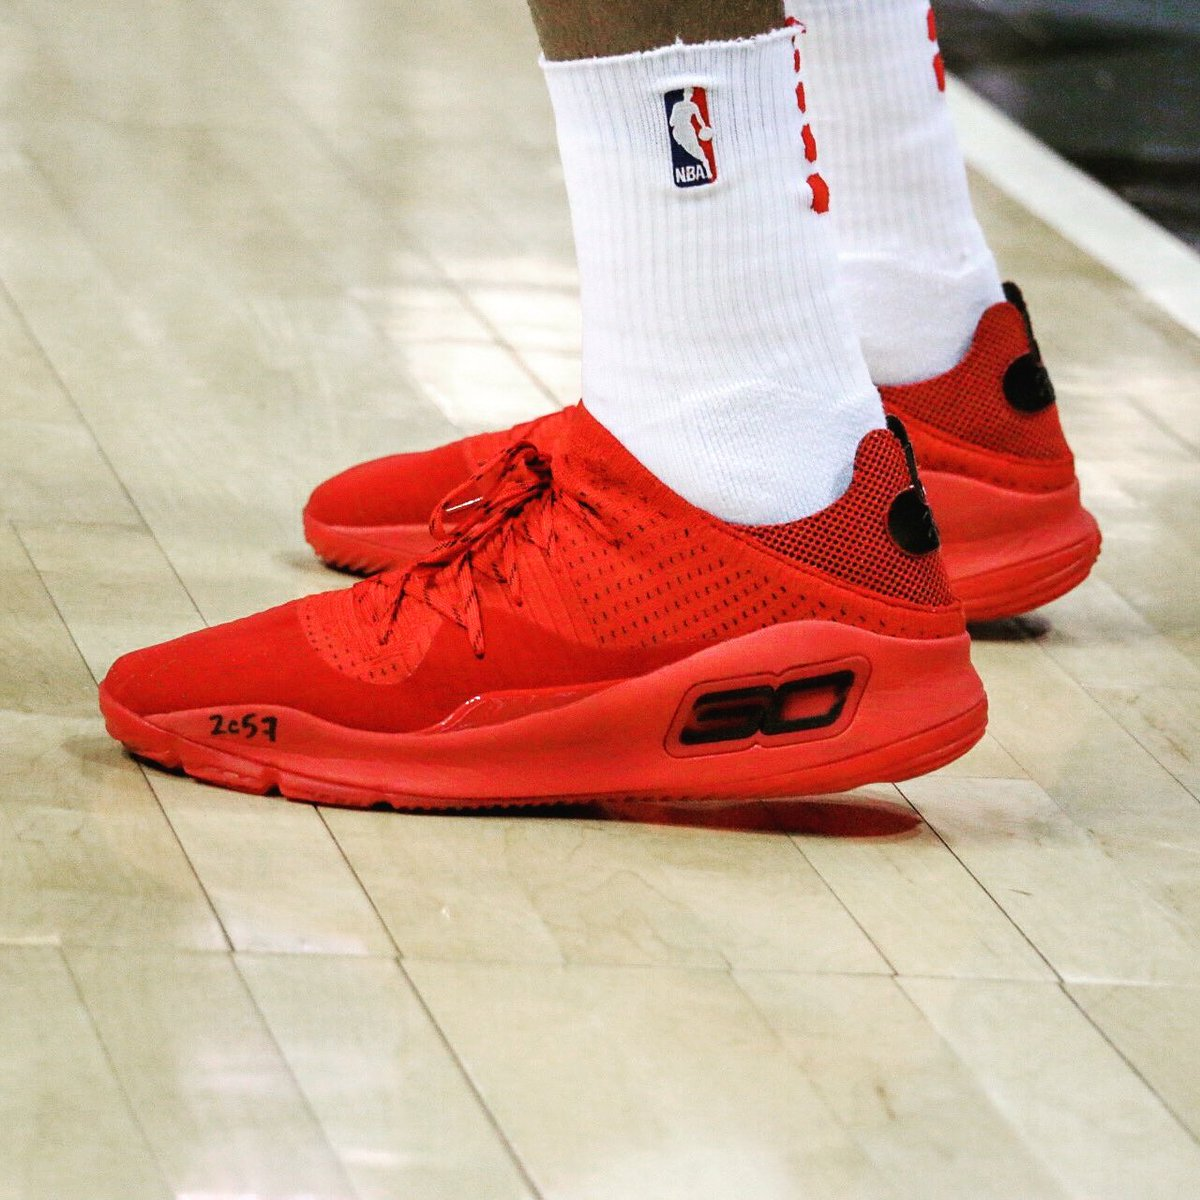 4e1a994bb7ed Kent Bazemore s playing in an all-red low version of the  Curry4 tonight.